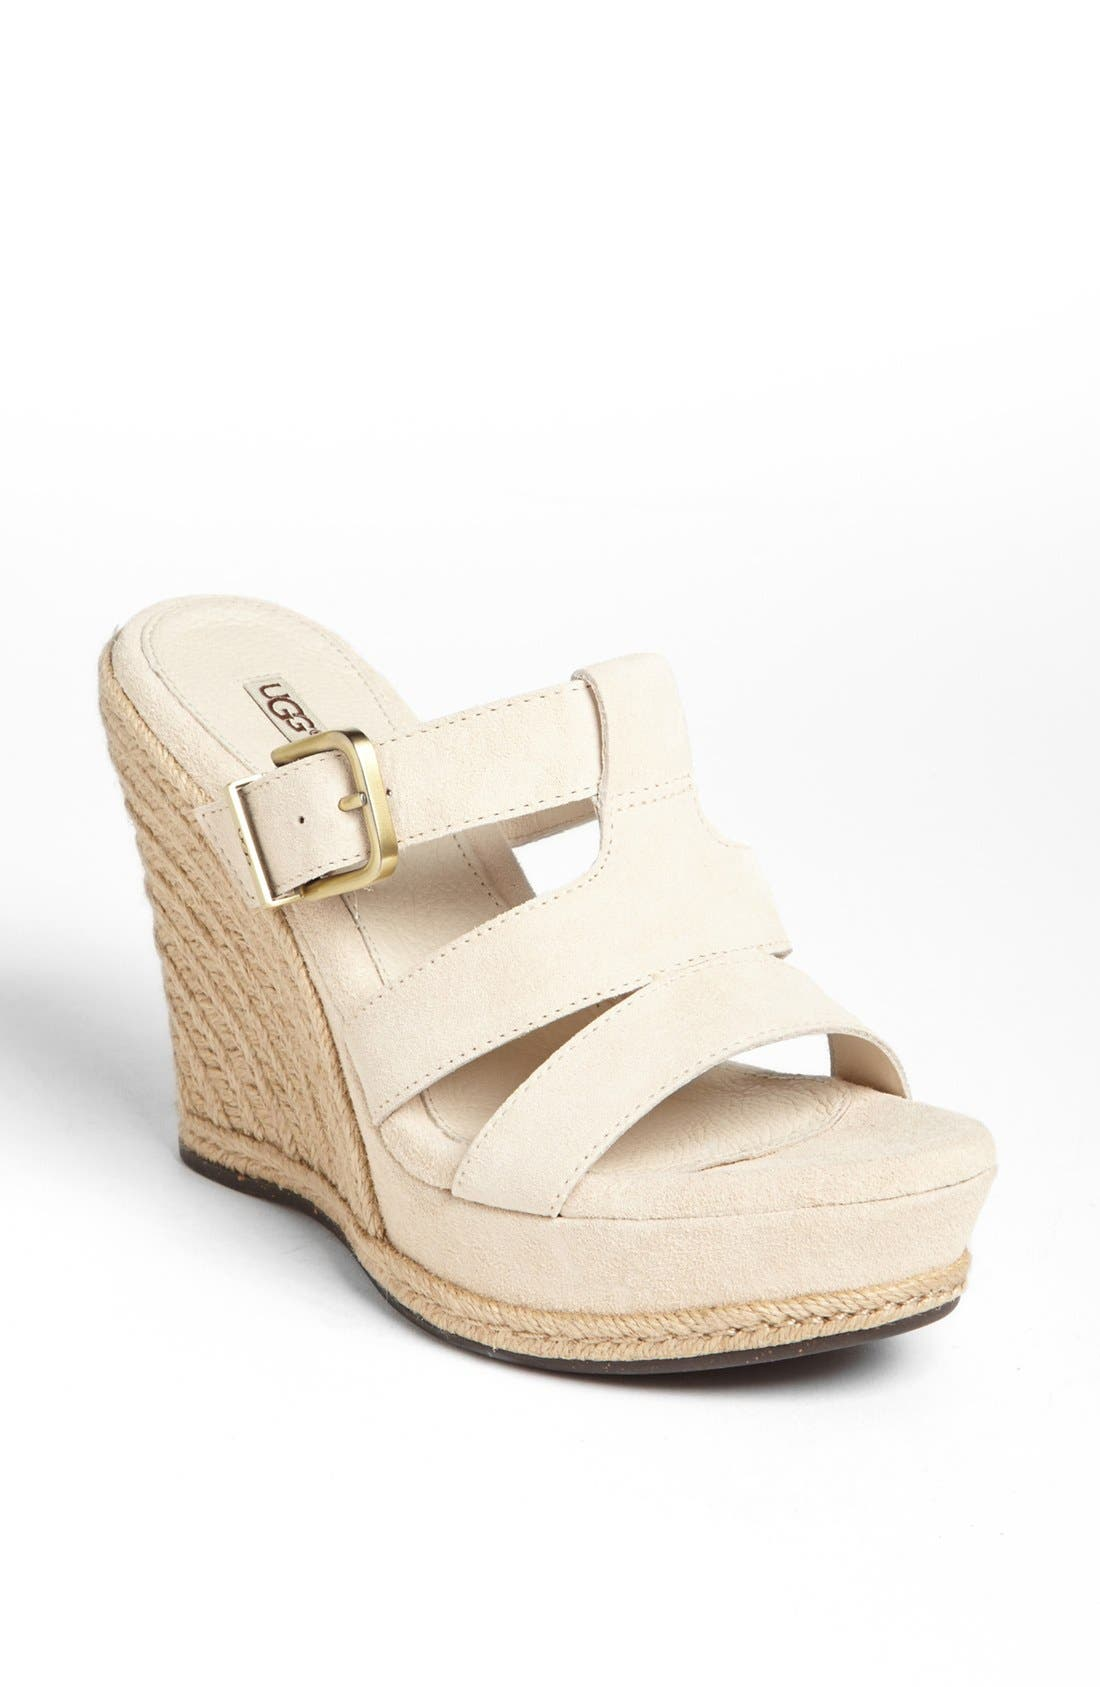 Alternate Image 1 Selected - UGG® Australia 'Hedy' Sandal (Women)